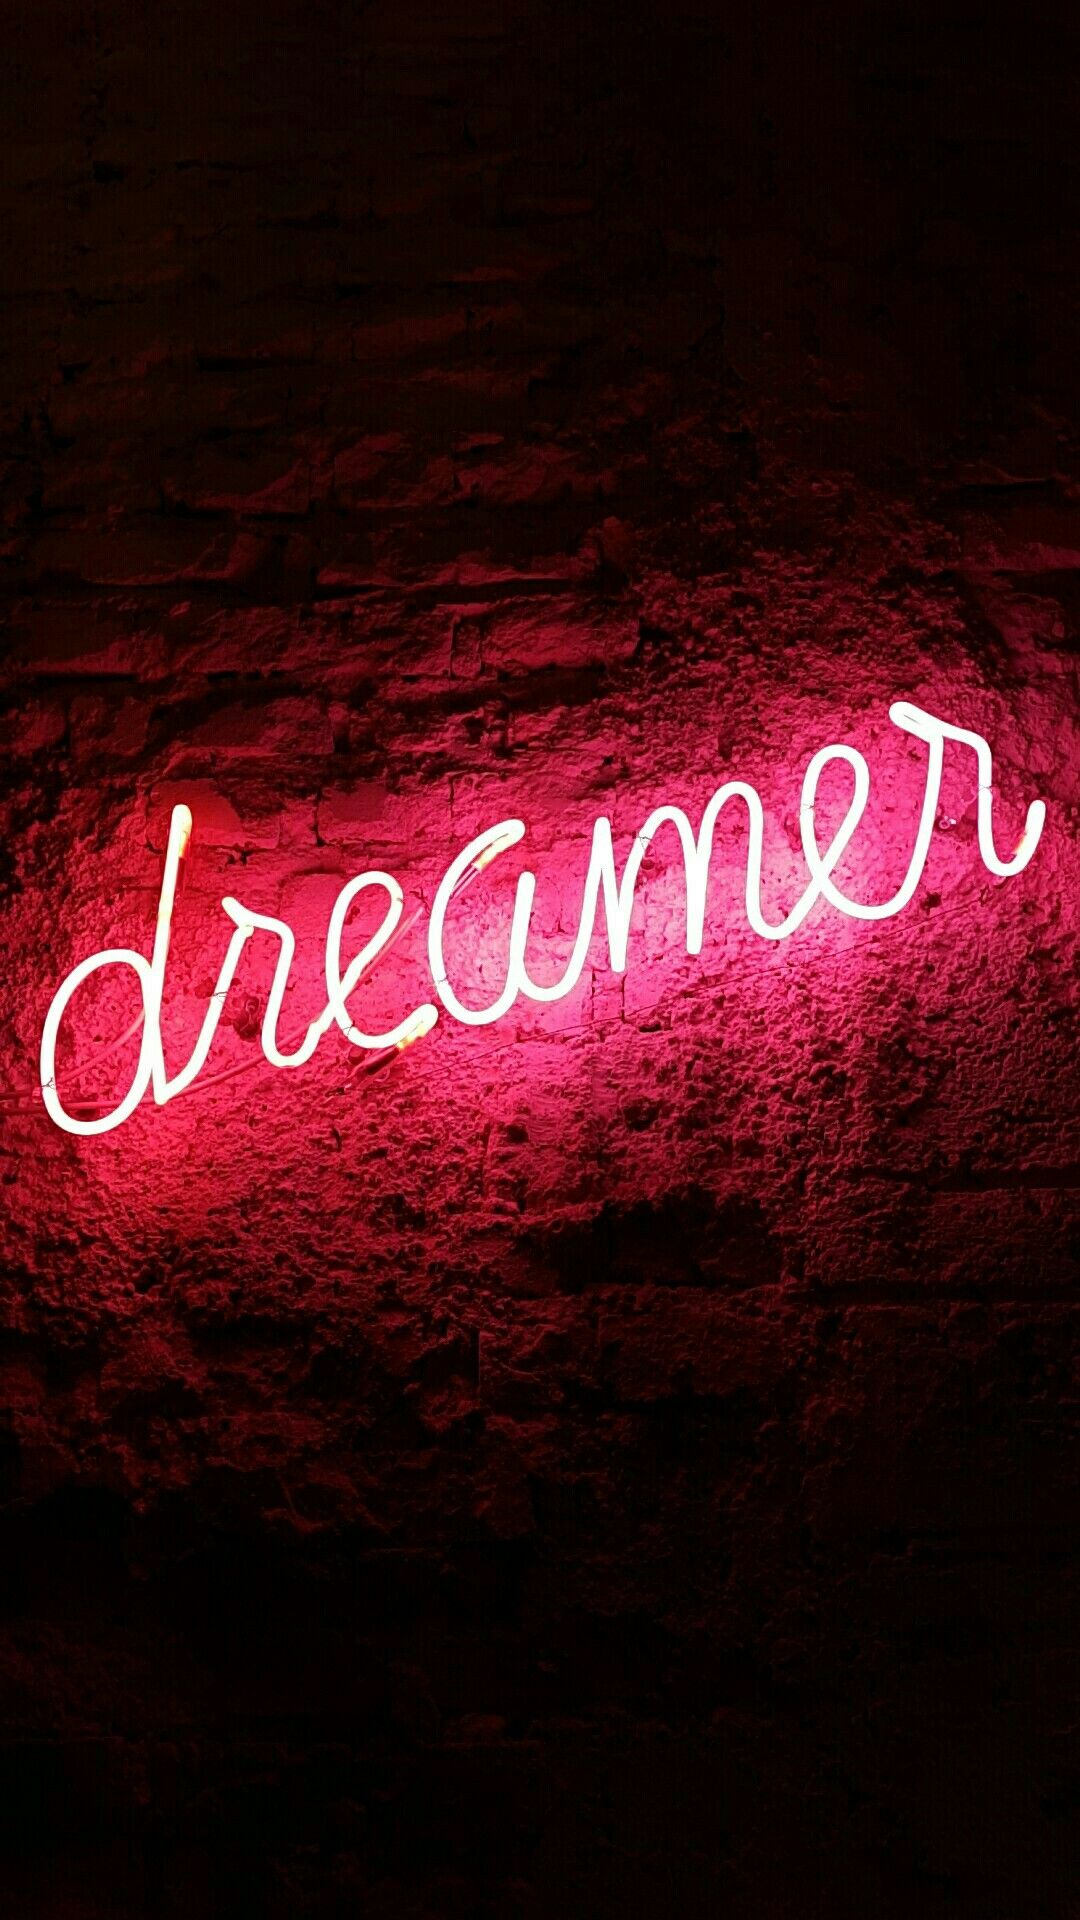 Dreamer neon sign This could be your wallpaper Your welcome 1080x1920